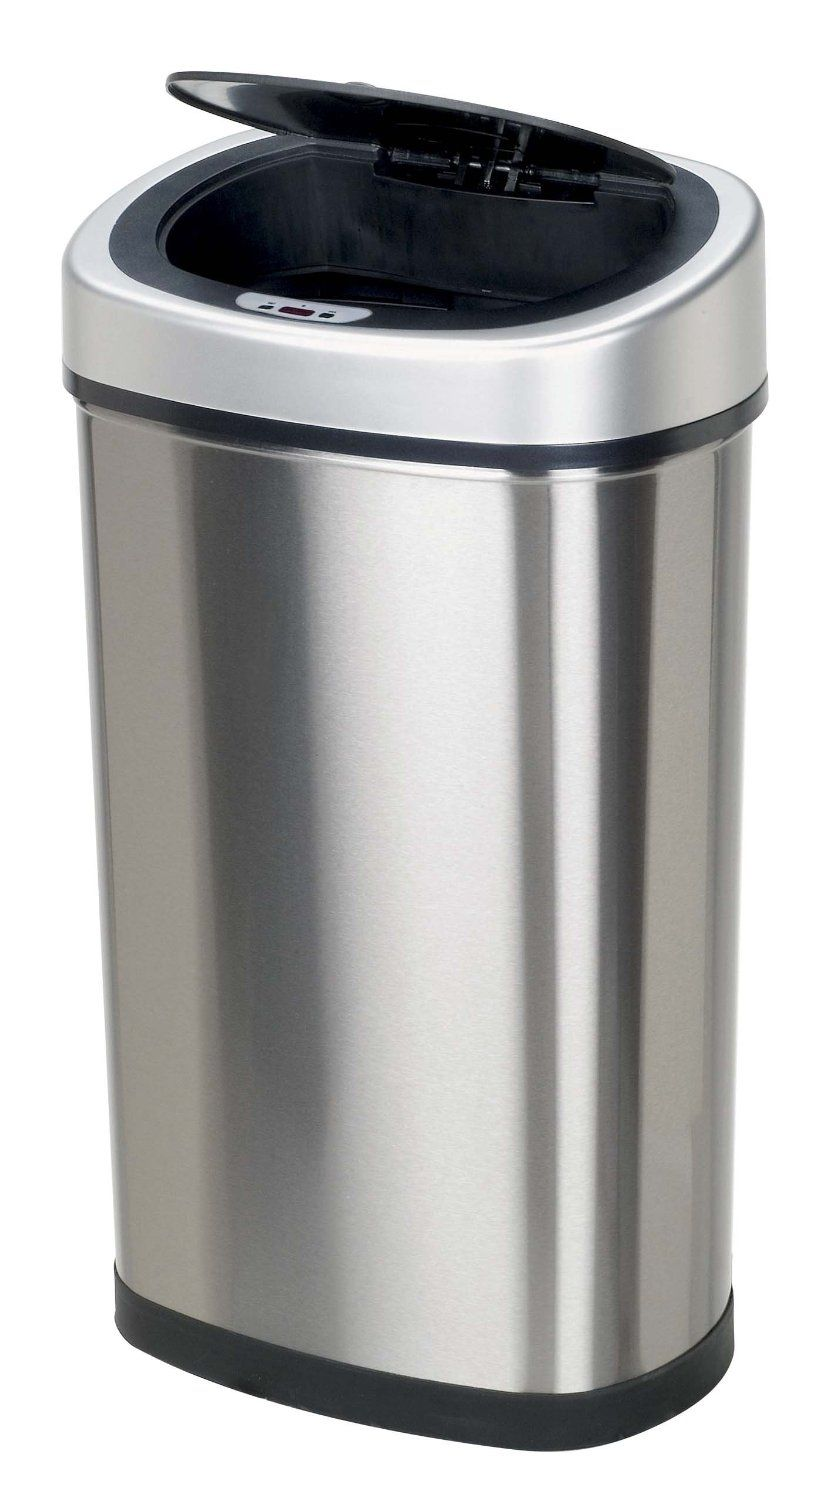 Nine Stars DZT-50-9 Touchless Stainless Steel 13.2 Gallon Trash Can ...